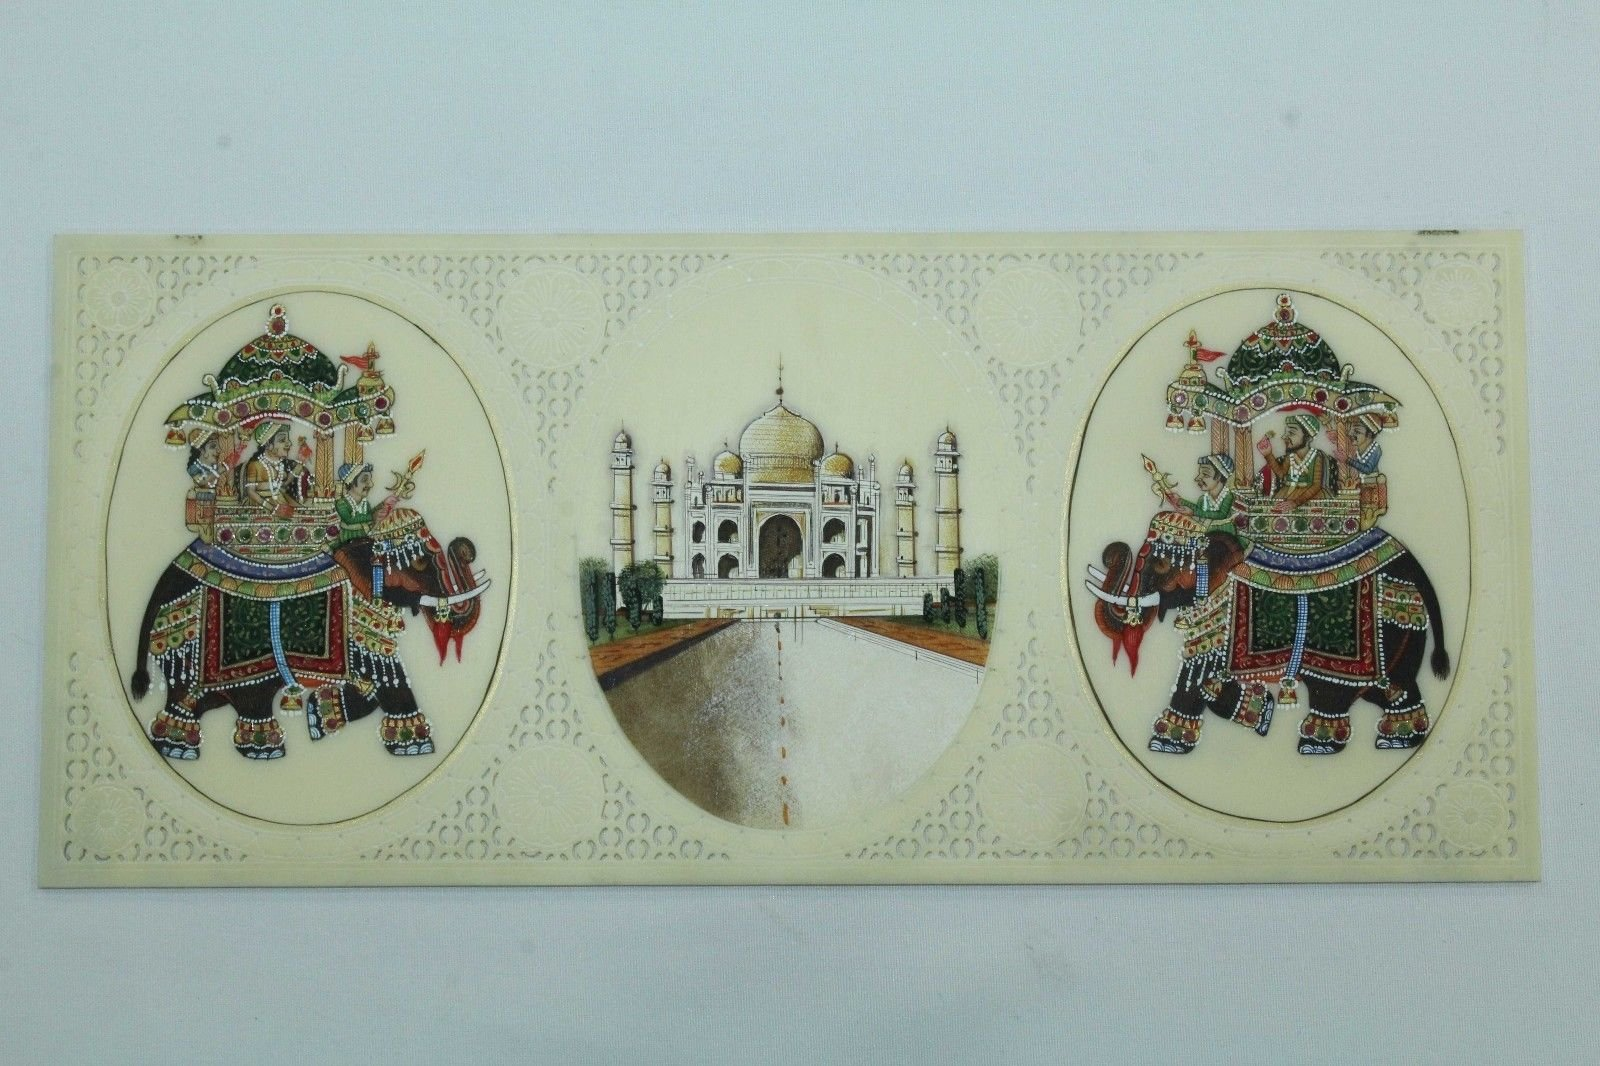 Rajasthan Gems Painting On Resin India Taj Mahal and Elephant with natural stones